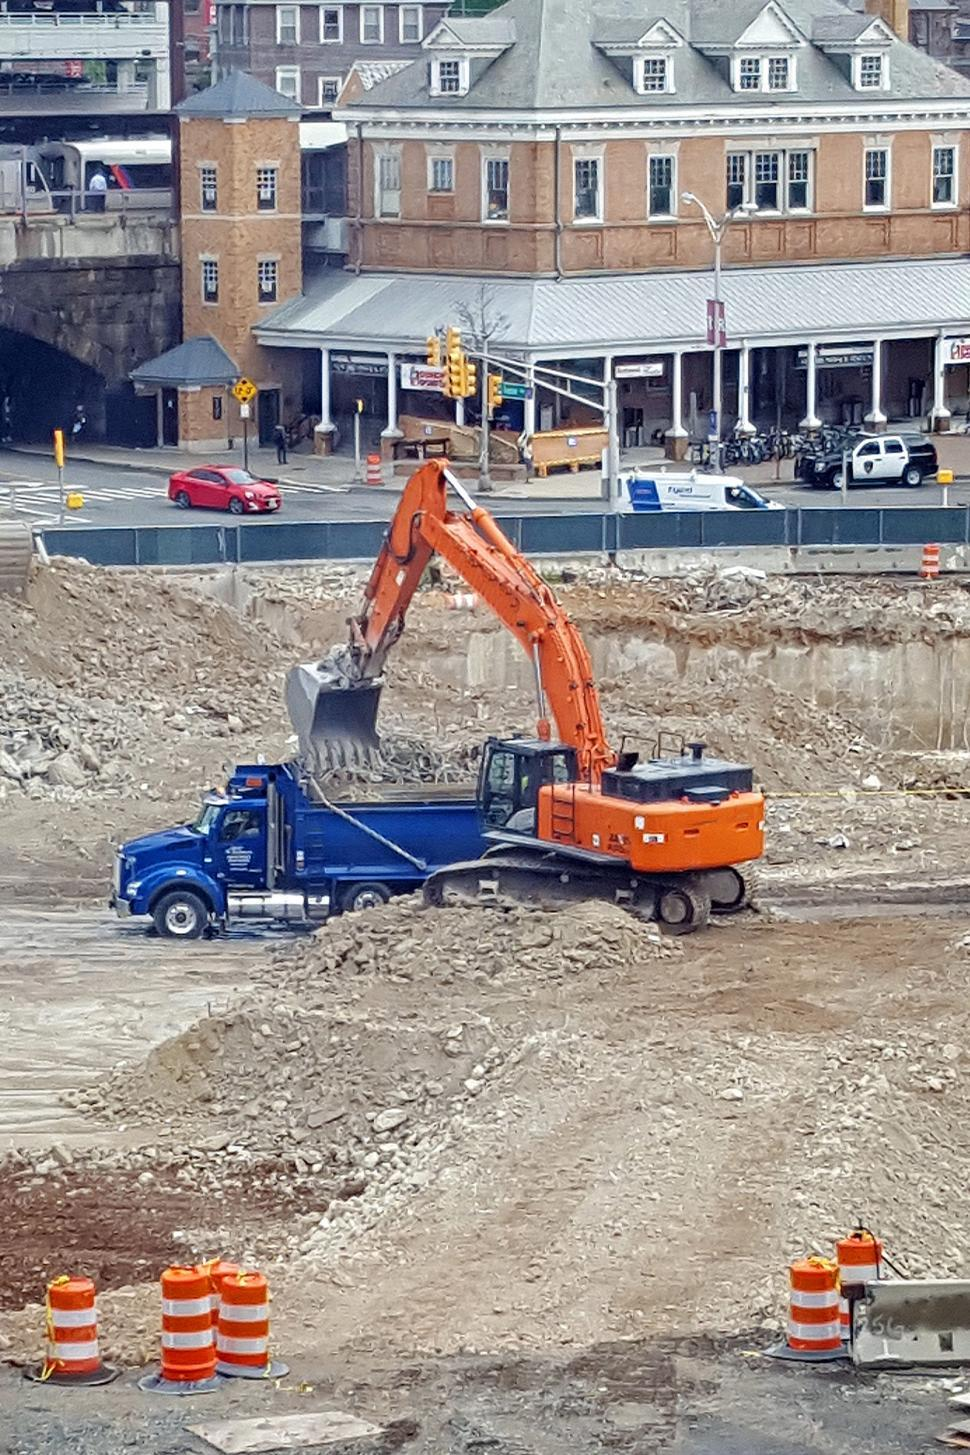 Download Free Stock HD Photo of Excavator and Dump Truck Online